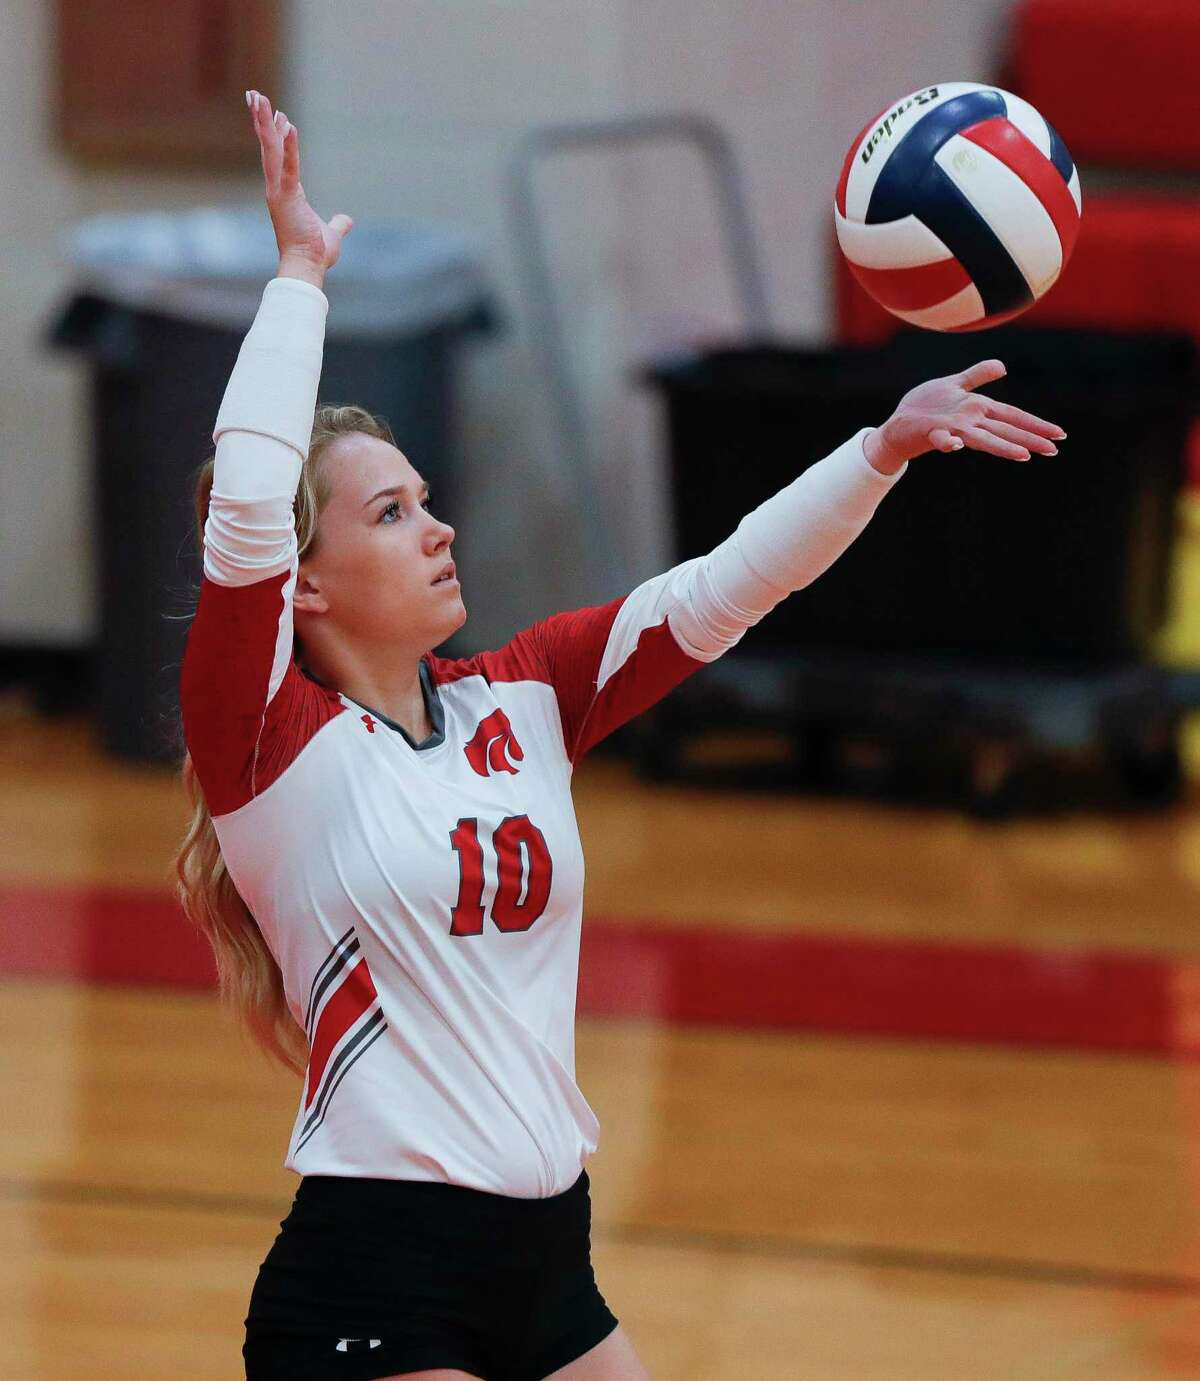 Tori Moore #10 of Splendora serves the ball during the second set of a non-district high school volleyball match, Tuesday, Aug. 11, 2020, in Splendora.